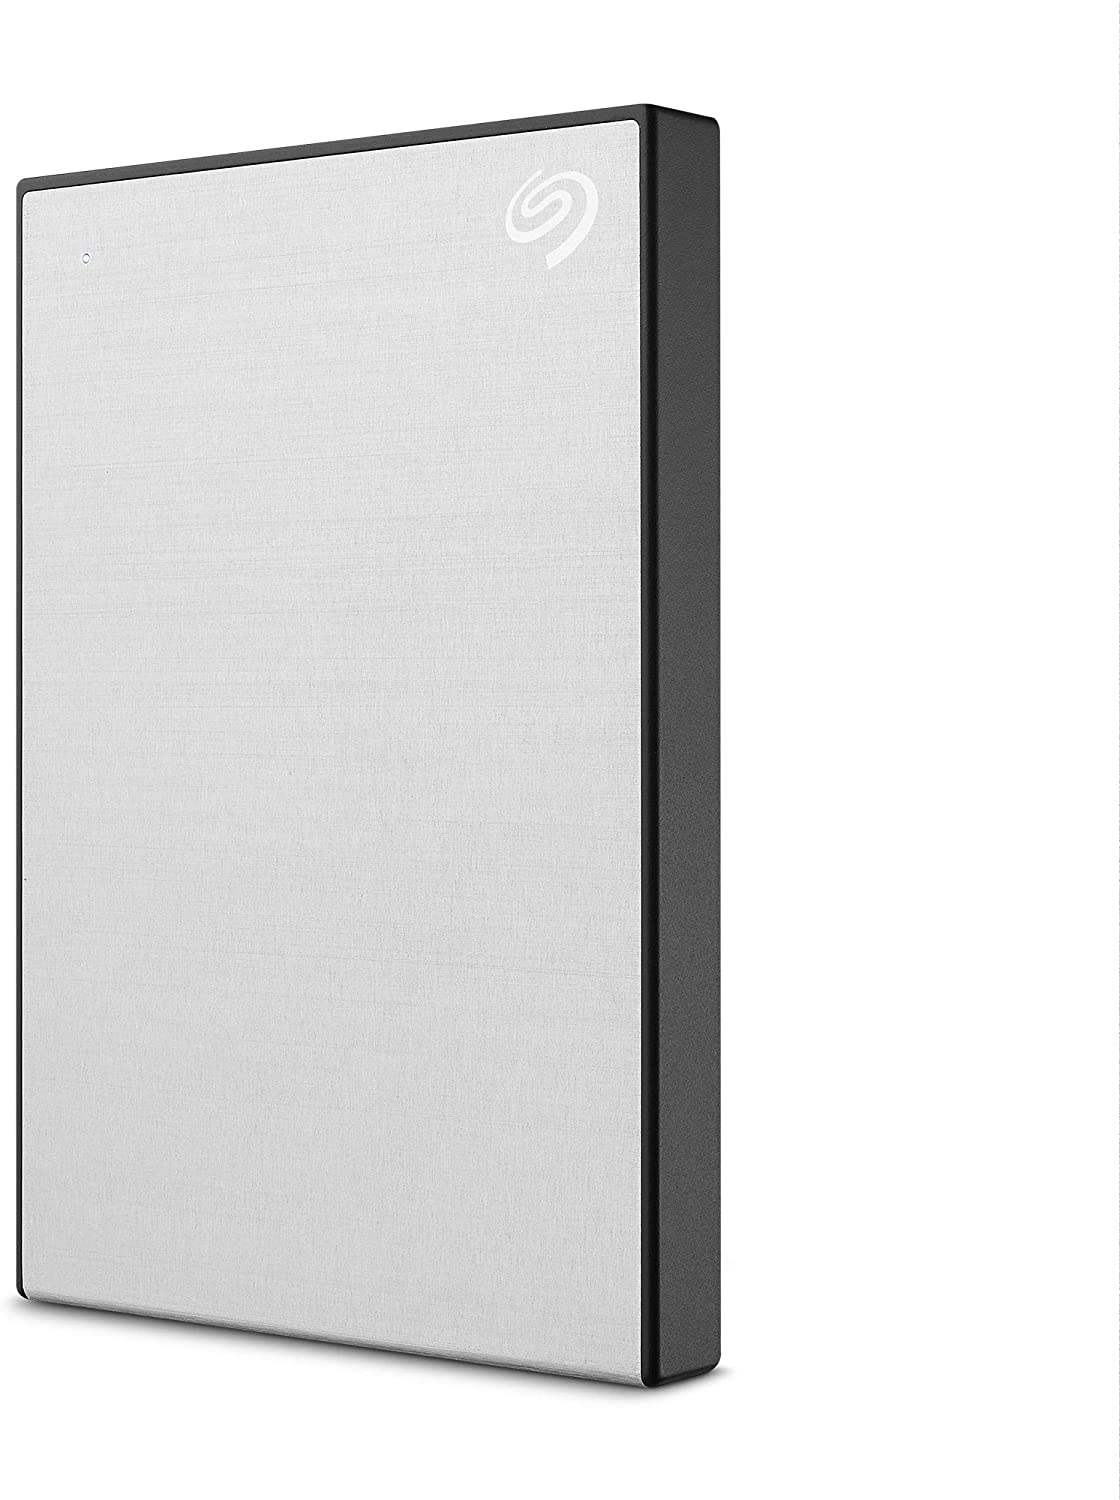 Seagate One Touch 2TB External Hard Drive